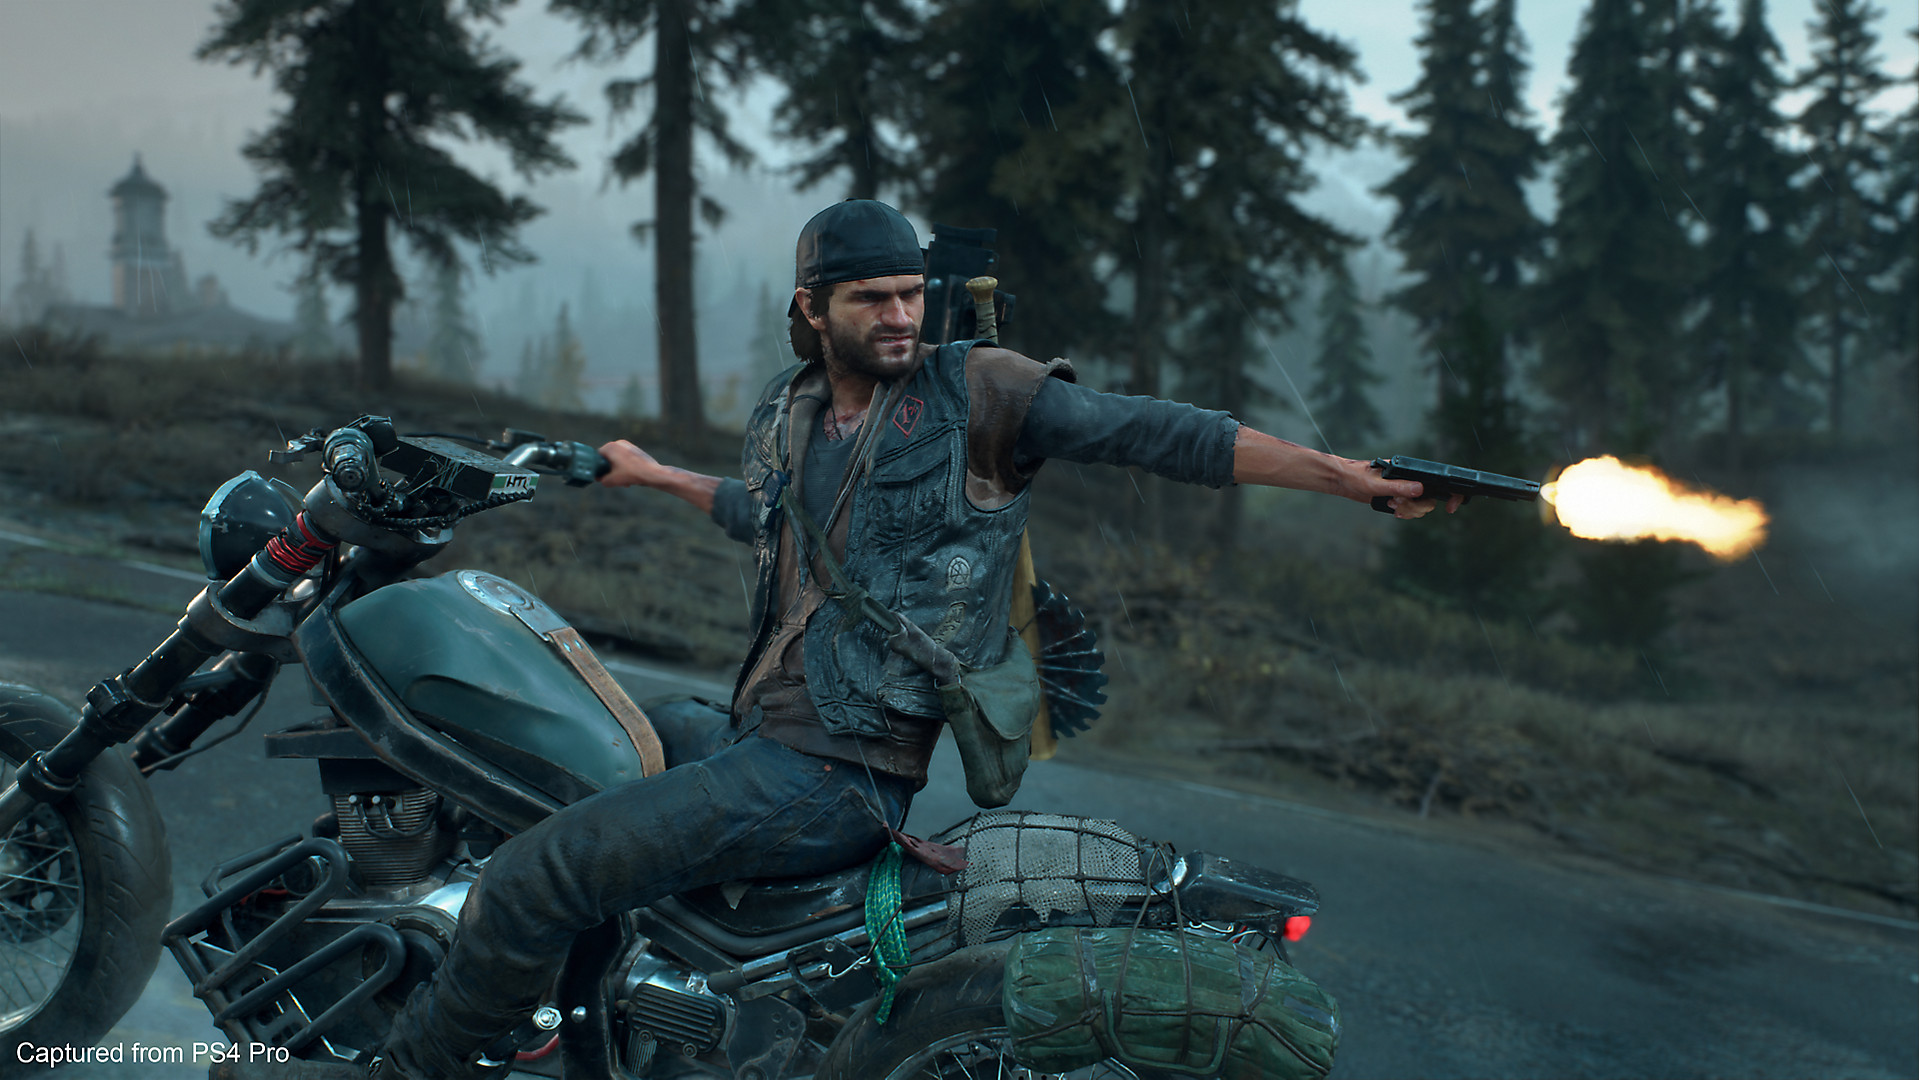 Days Gone review: A repetitive apocalypse